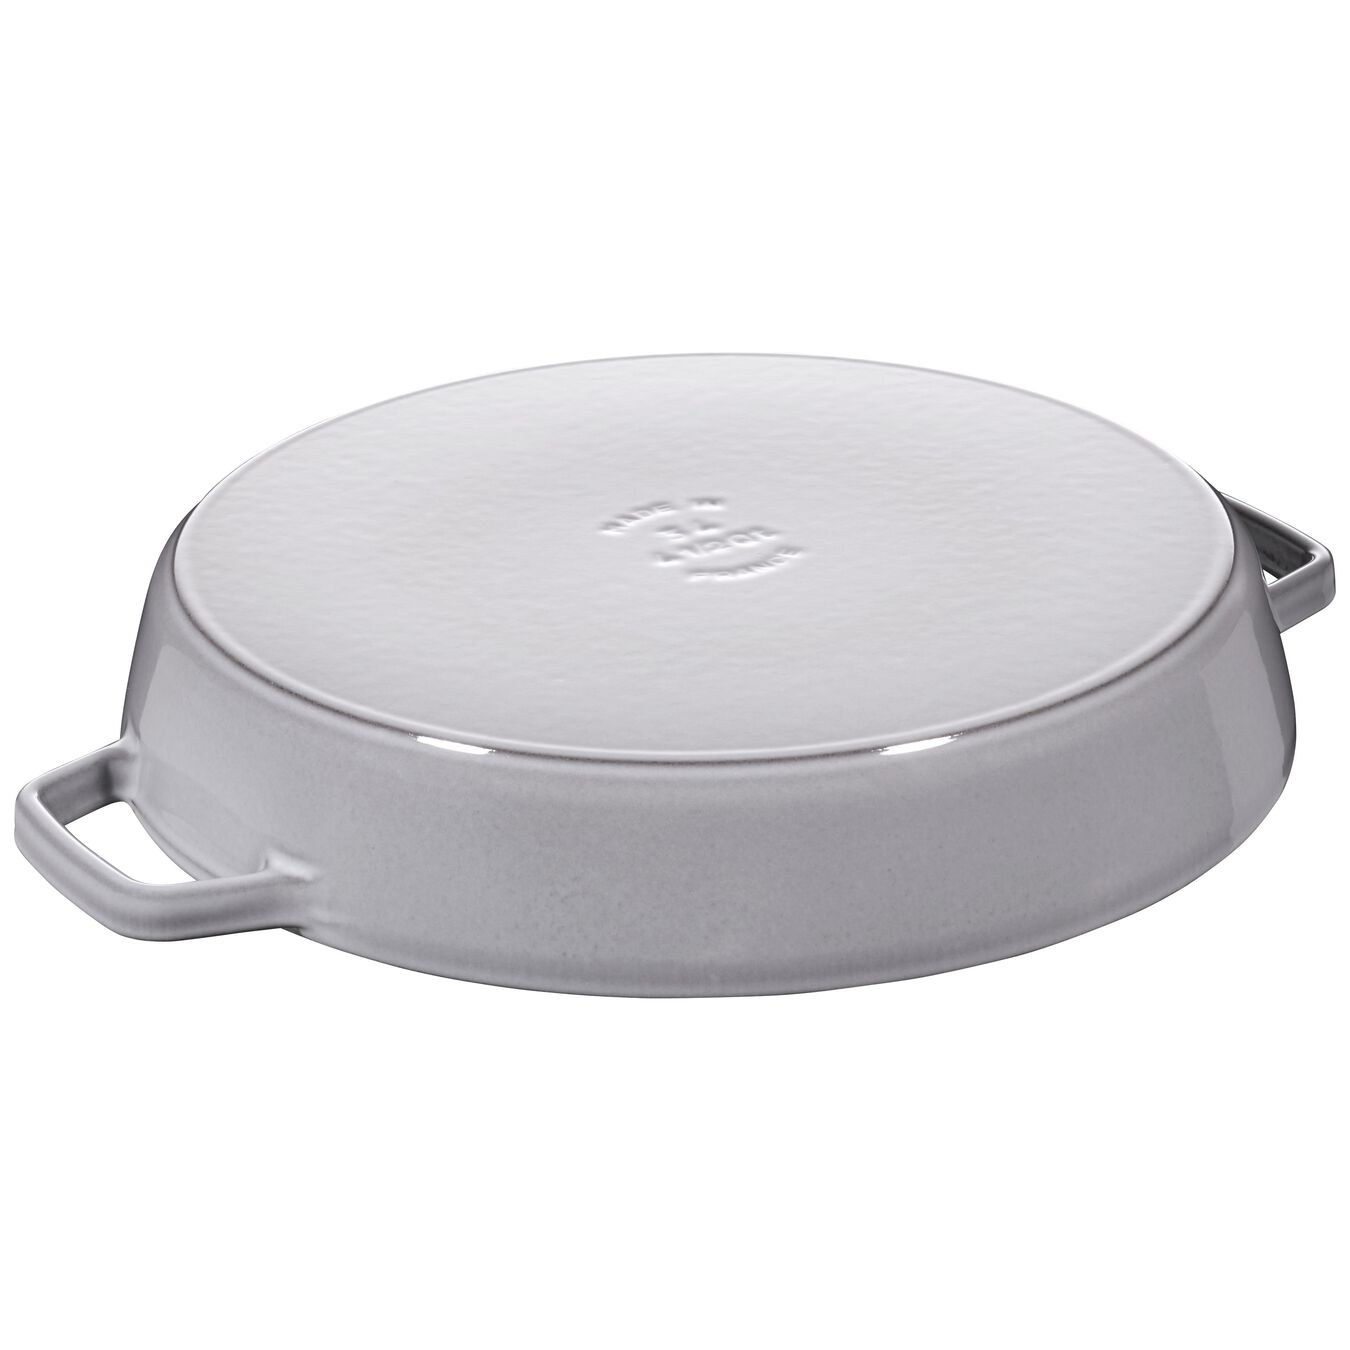 13-inch Double Handle Fry Pan - Visual Imperfections - Graphite Grey,,large 2